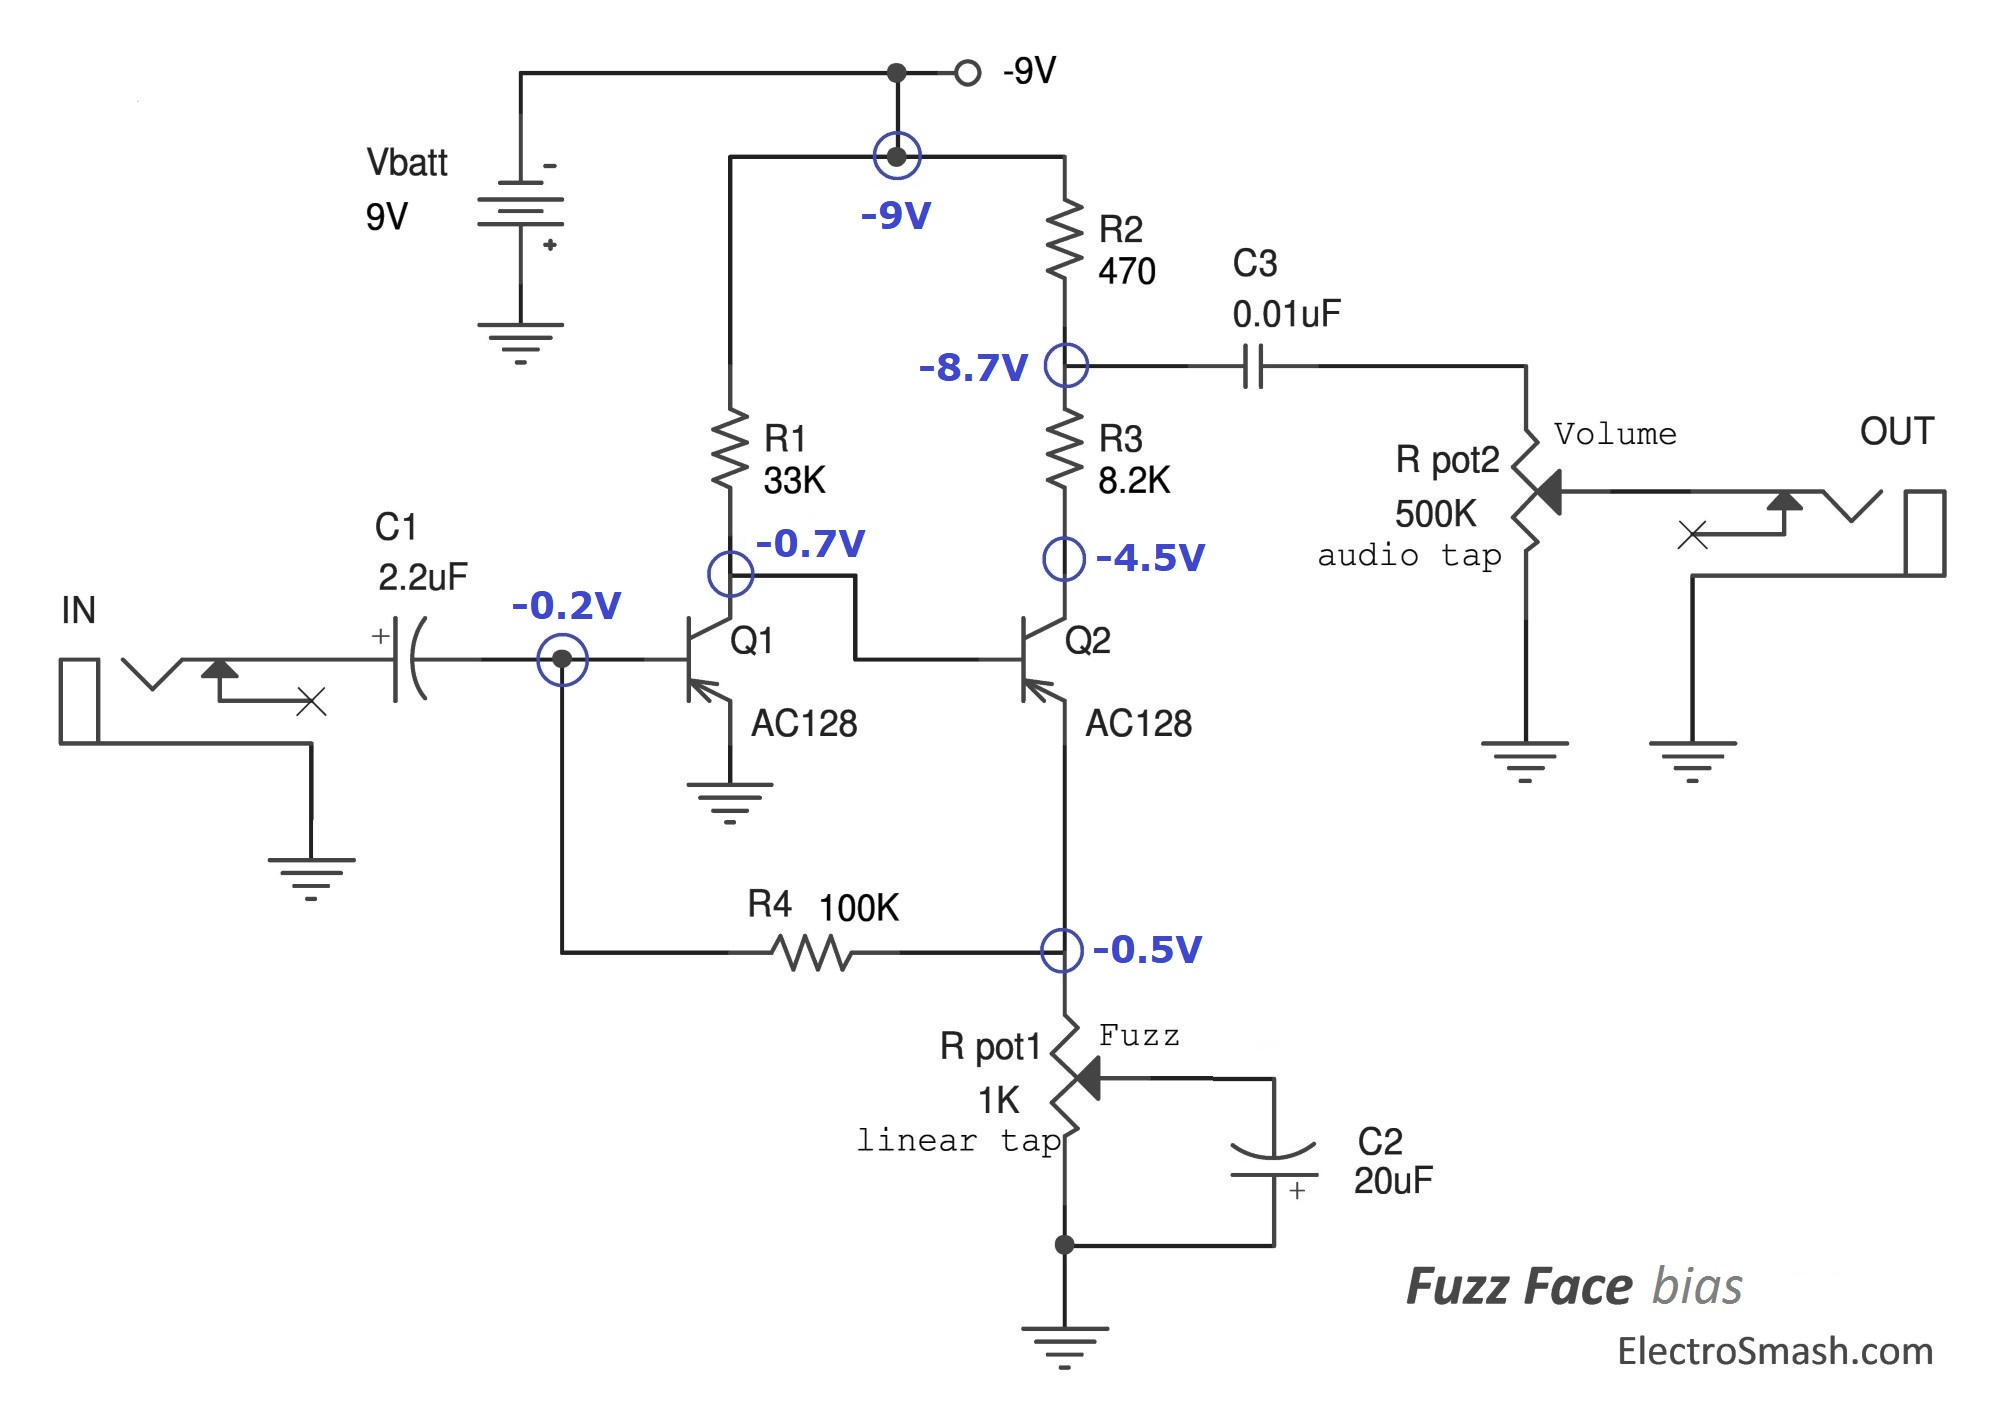 fuzz face bias electrosmash fuzz face analysis fuzz pedal wiring diagram at reclaimingppi.co